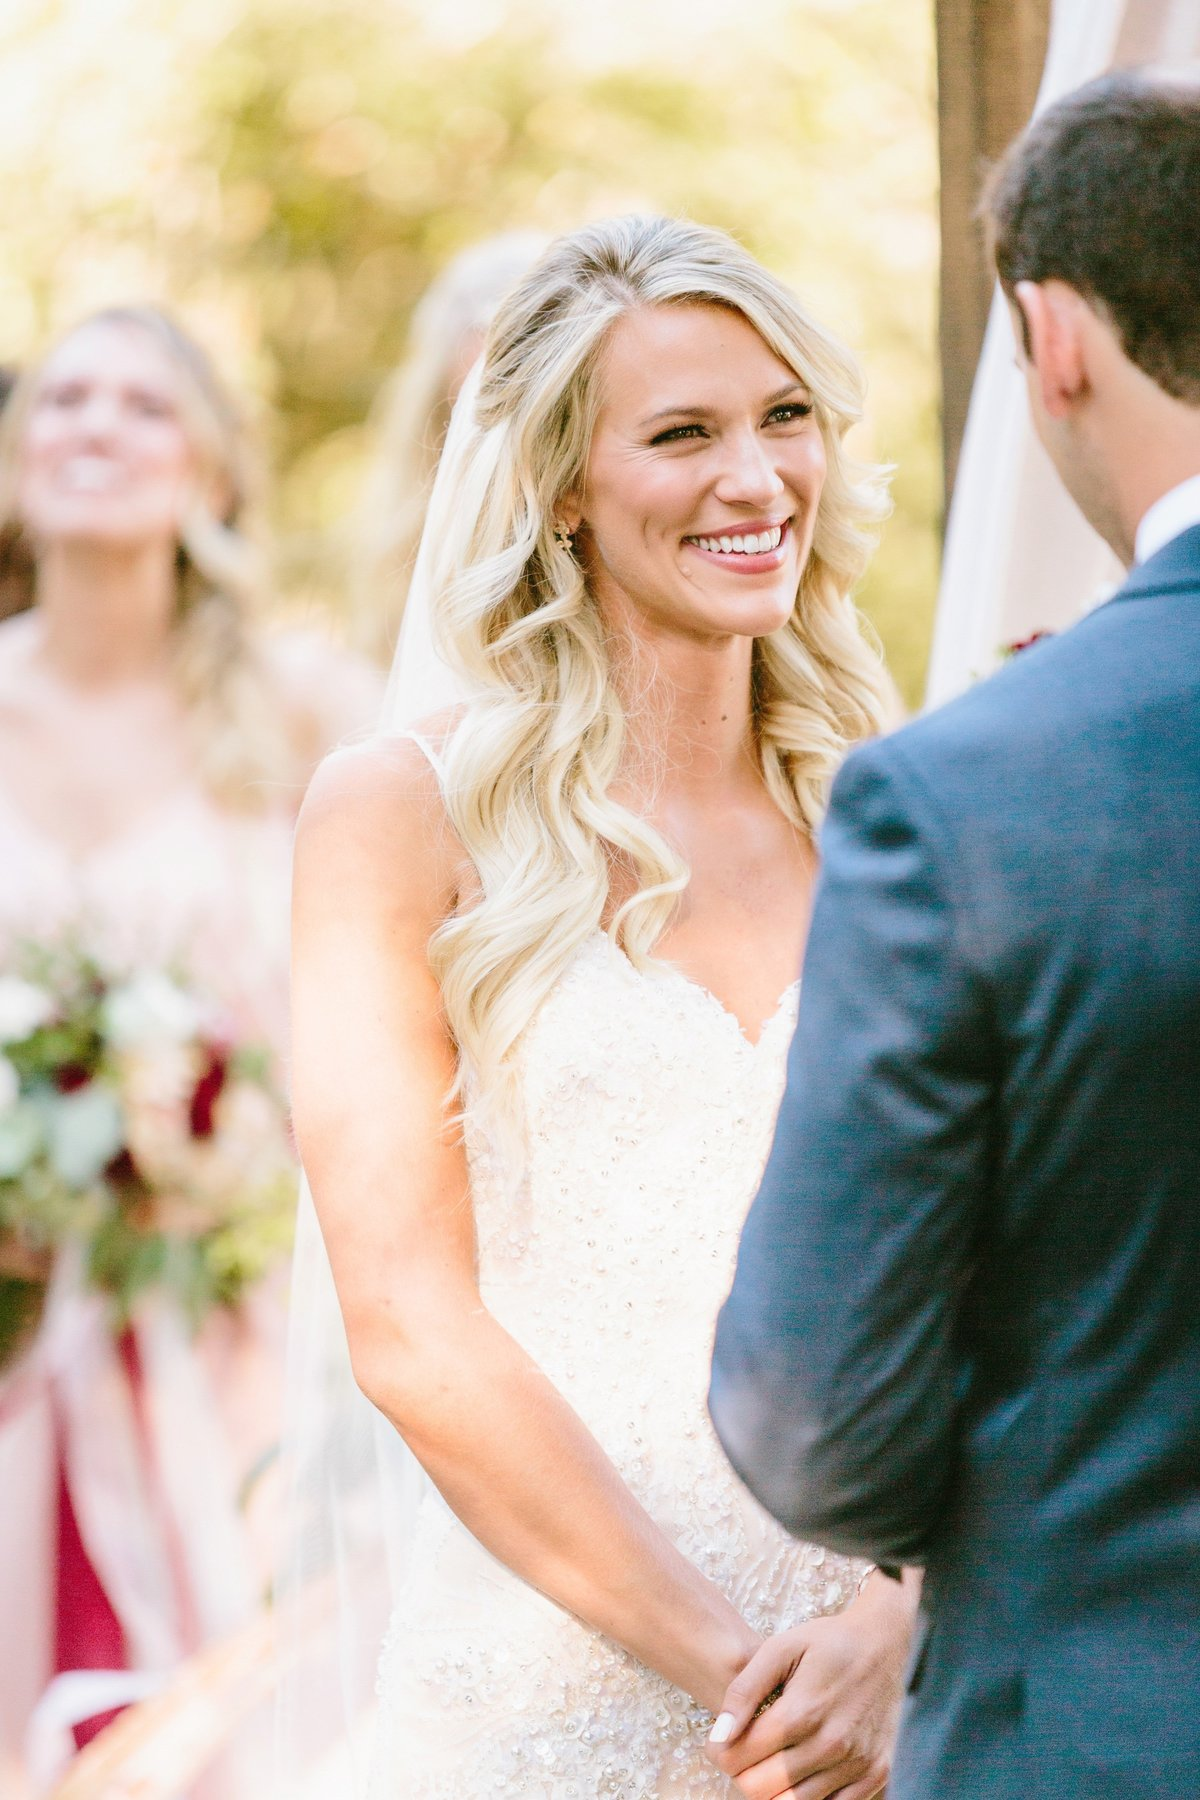 Best California Wedding Photographer-Jodee Debes Photography-332